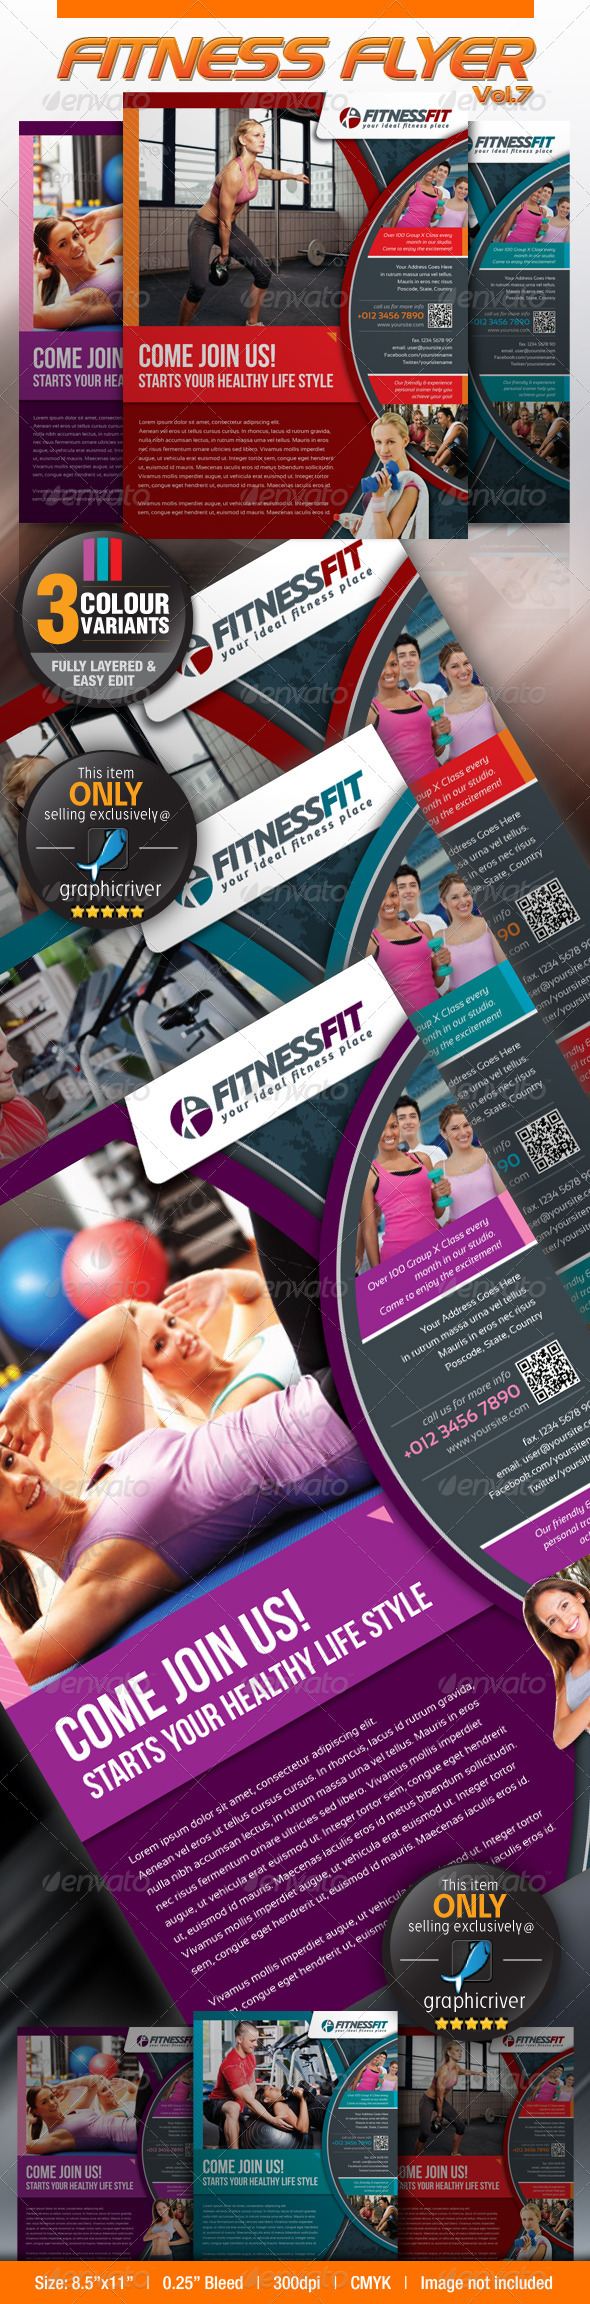 Fitness Flyer Vol.7 - Sports Events